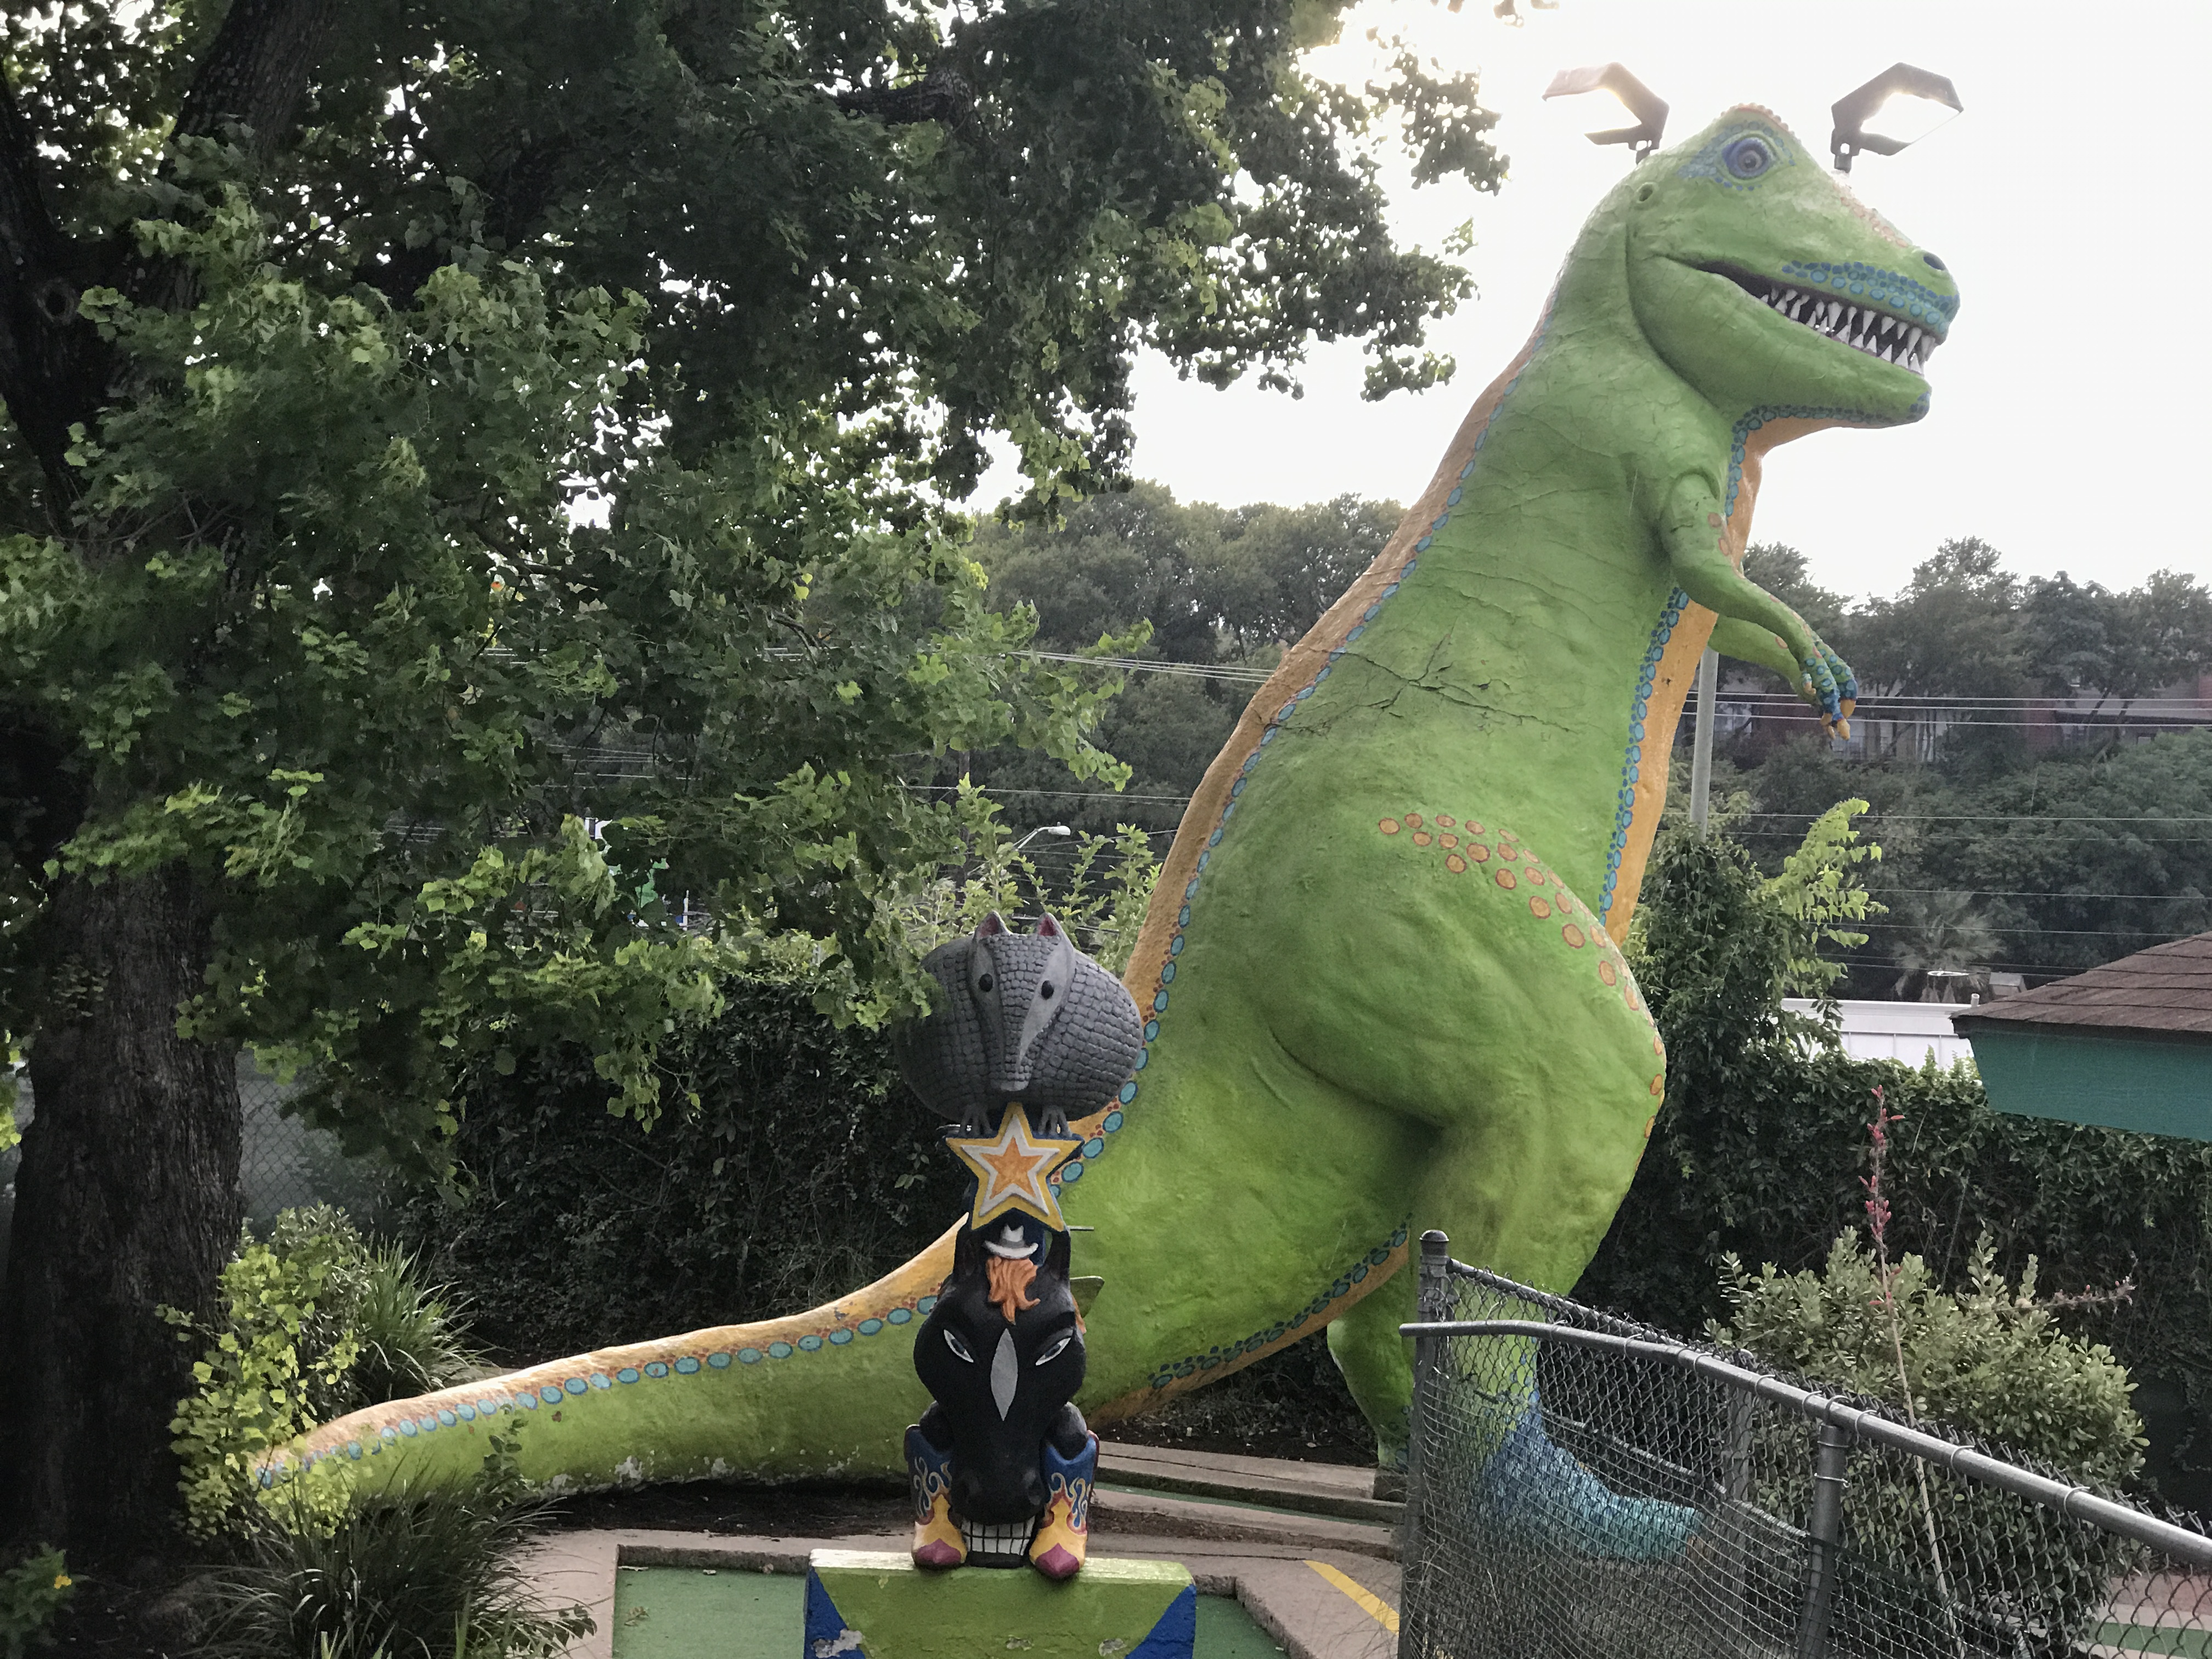 Peter Pan Mini Golf An Austin Tradition Since 1948